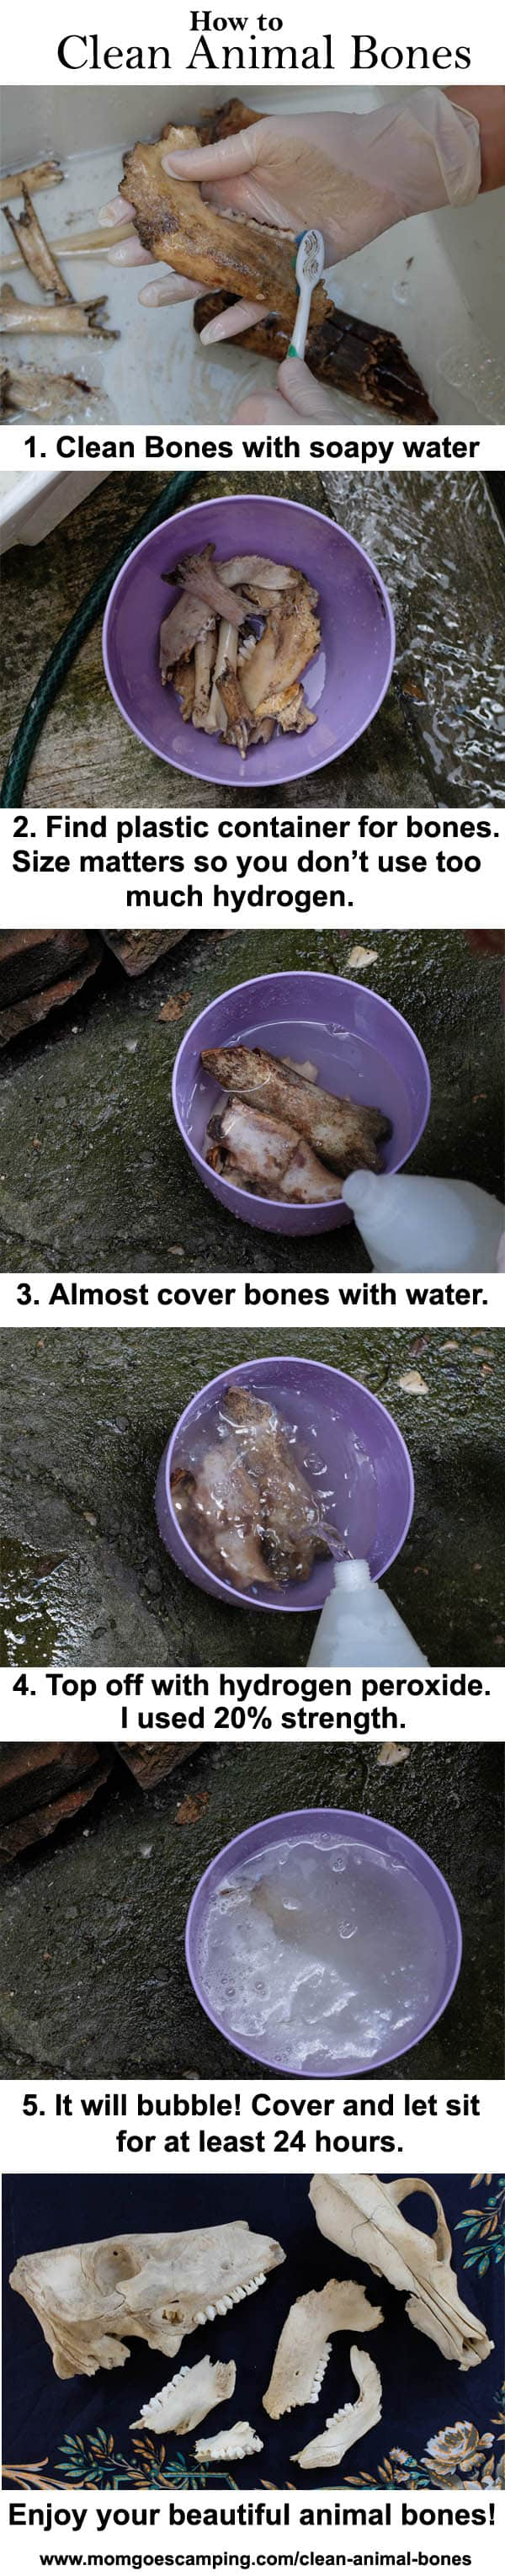 How to clean bones infographic